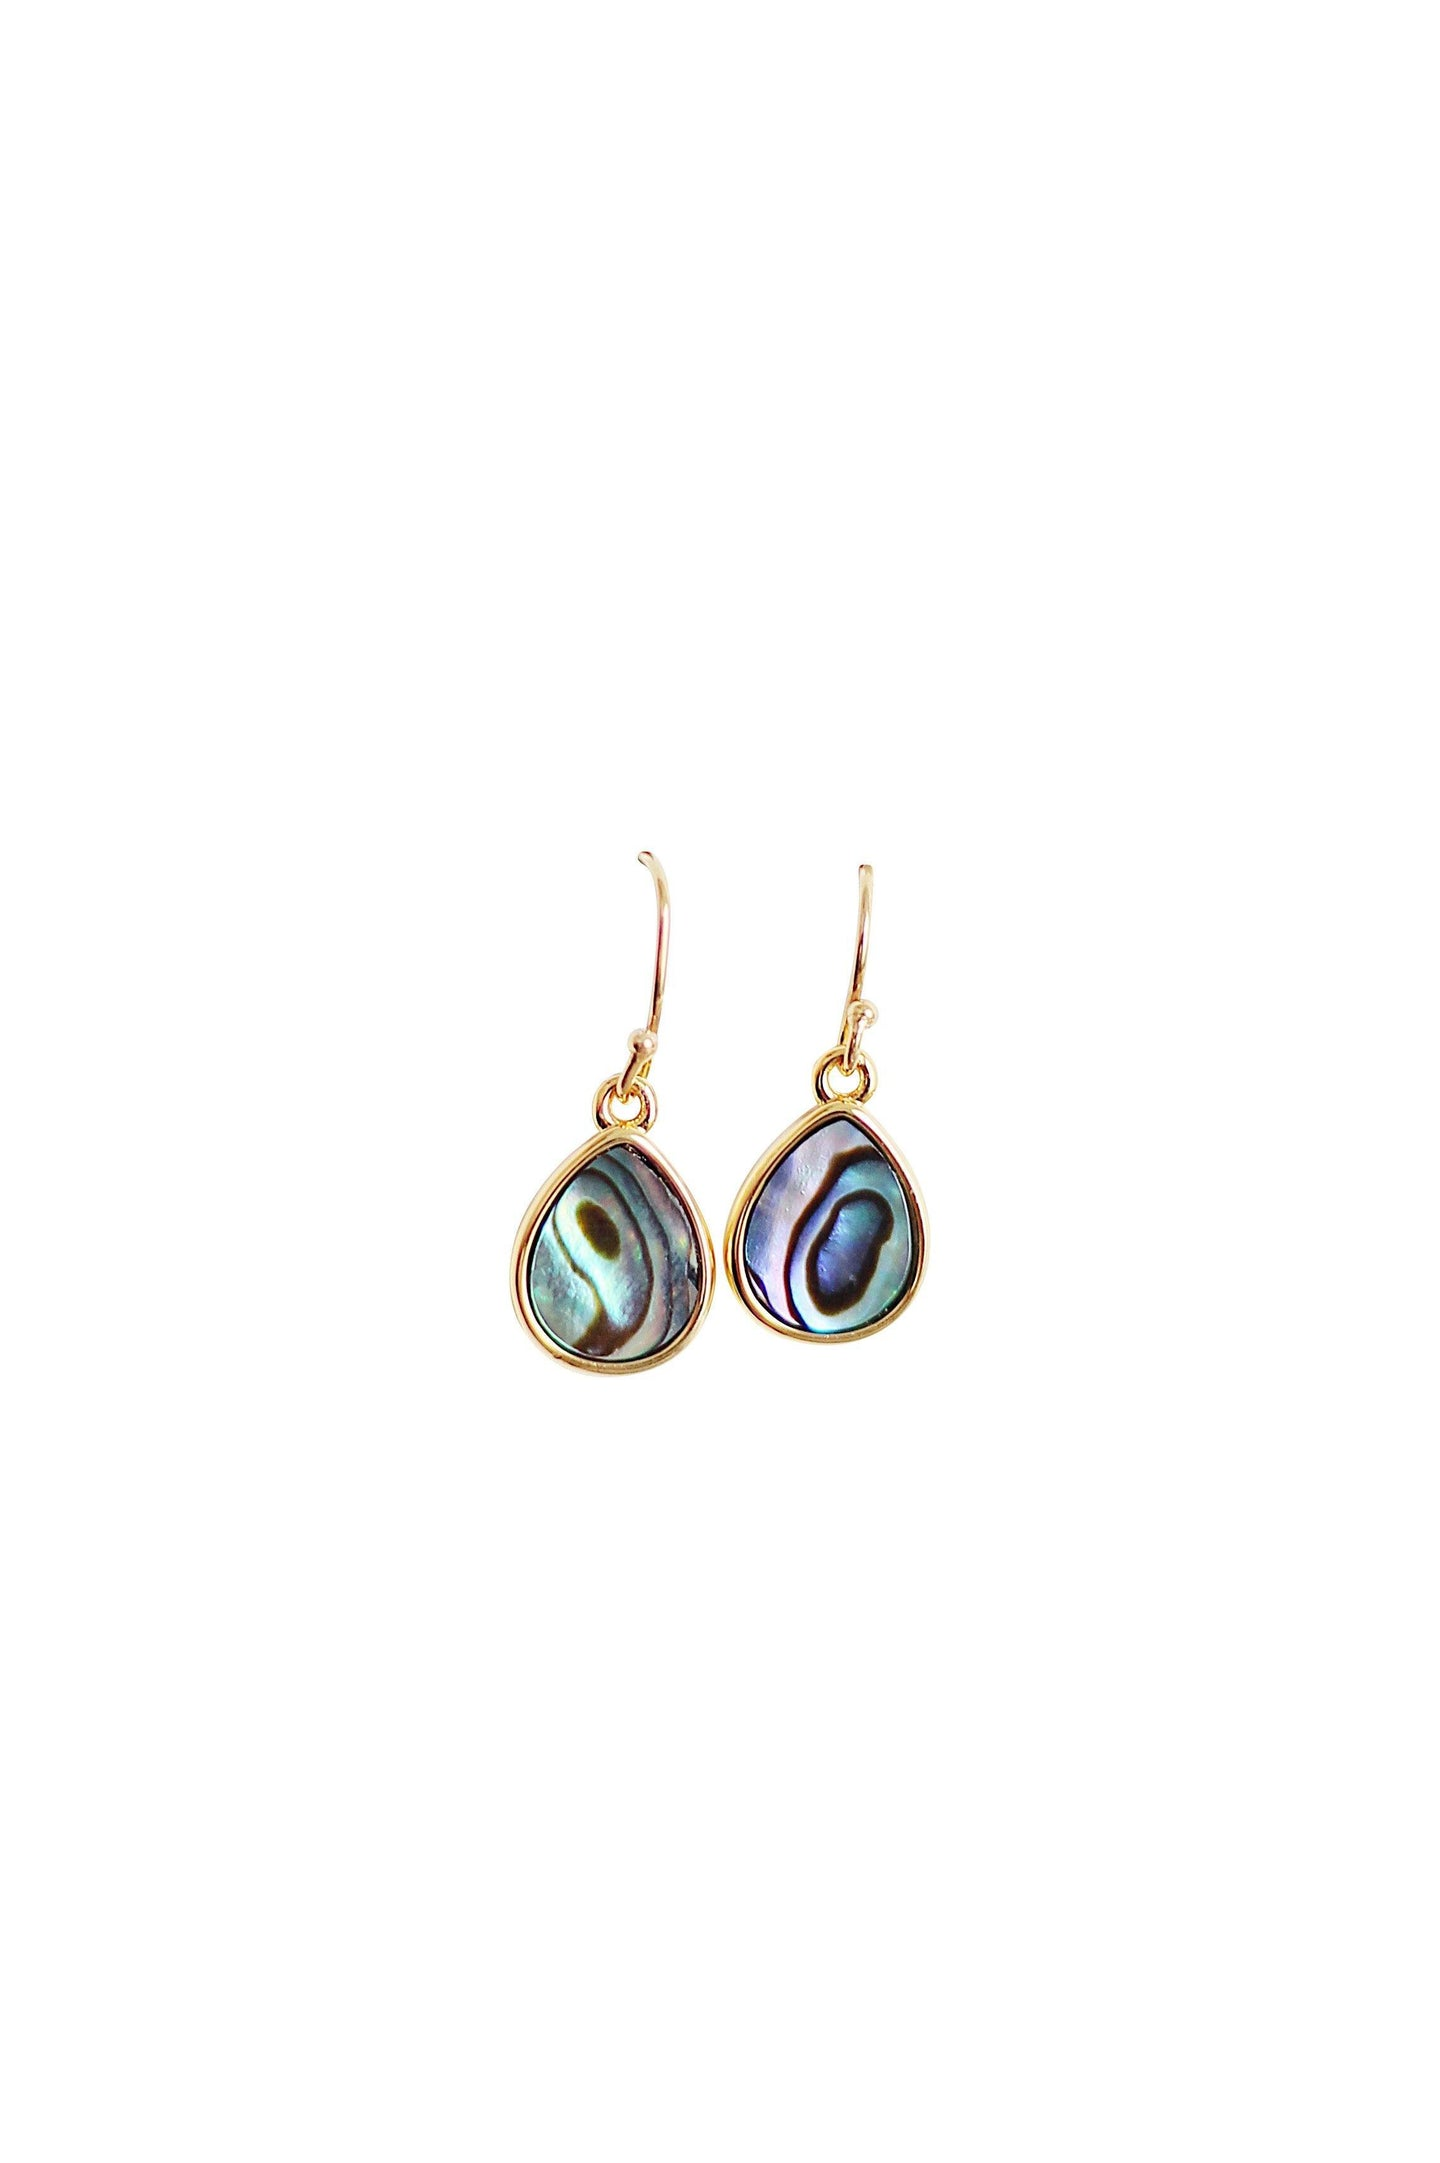 Abalone 14k Gold Coated Sterling Silver Teardrop Earrings